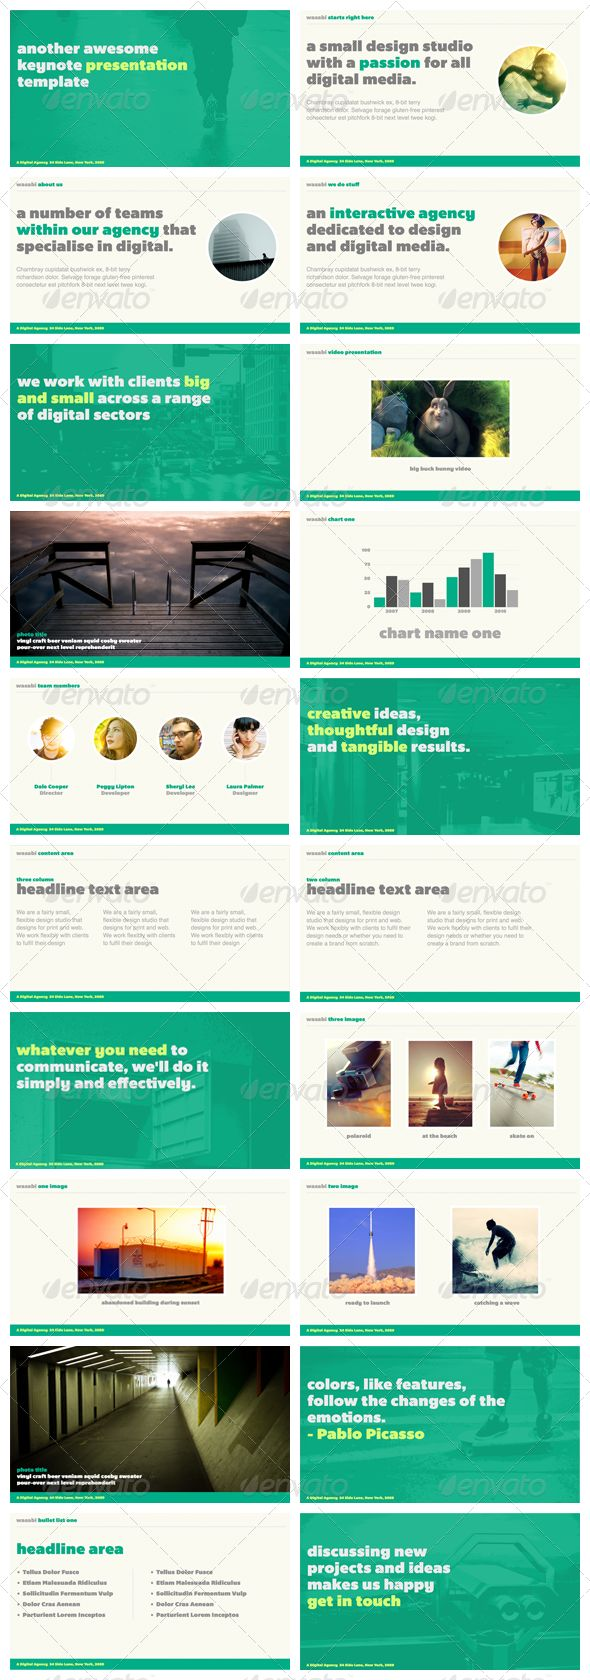 Wasabi - Keynote Presentation Template - GraphicRiver Item for Sale